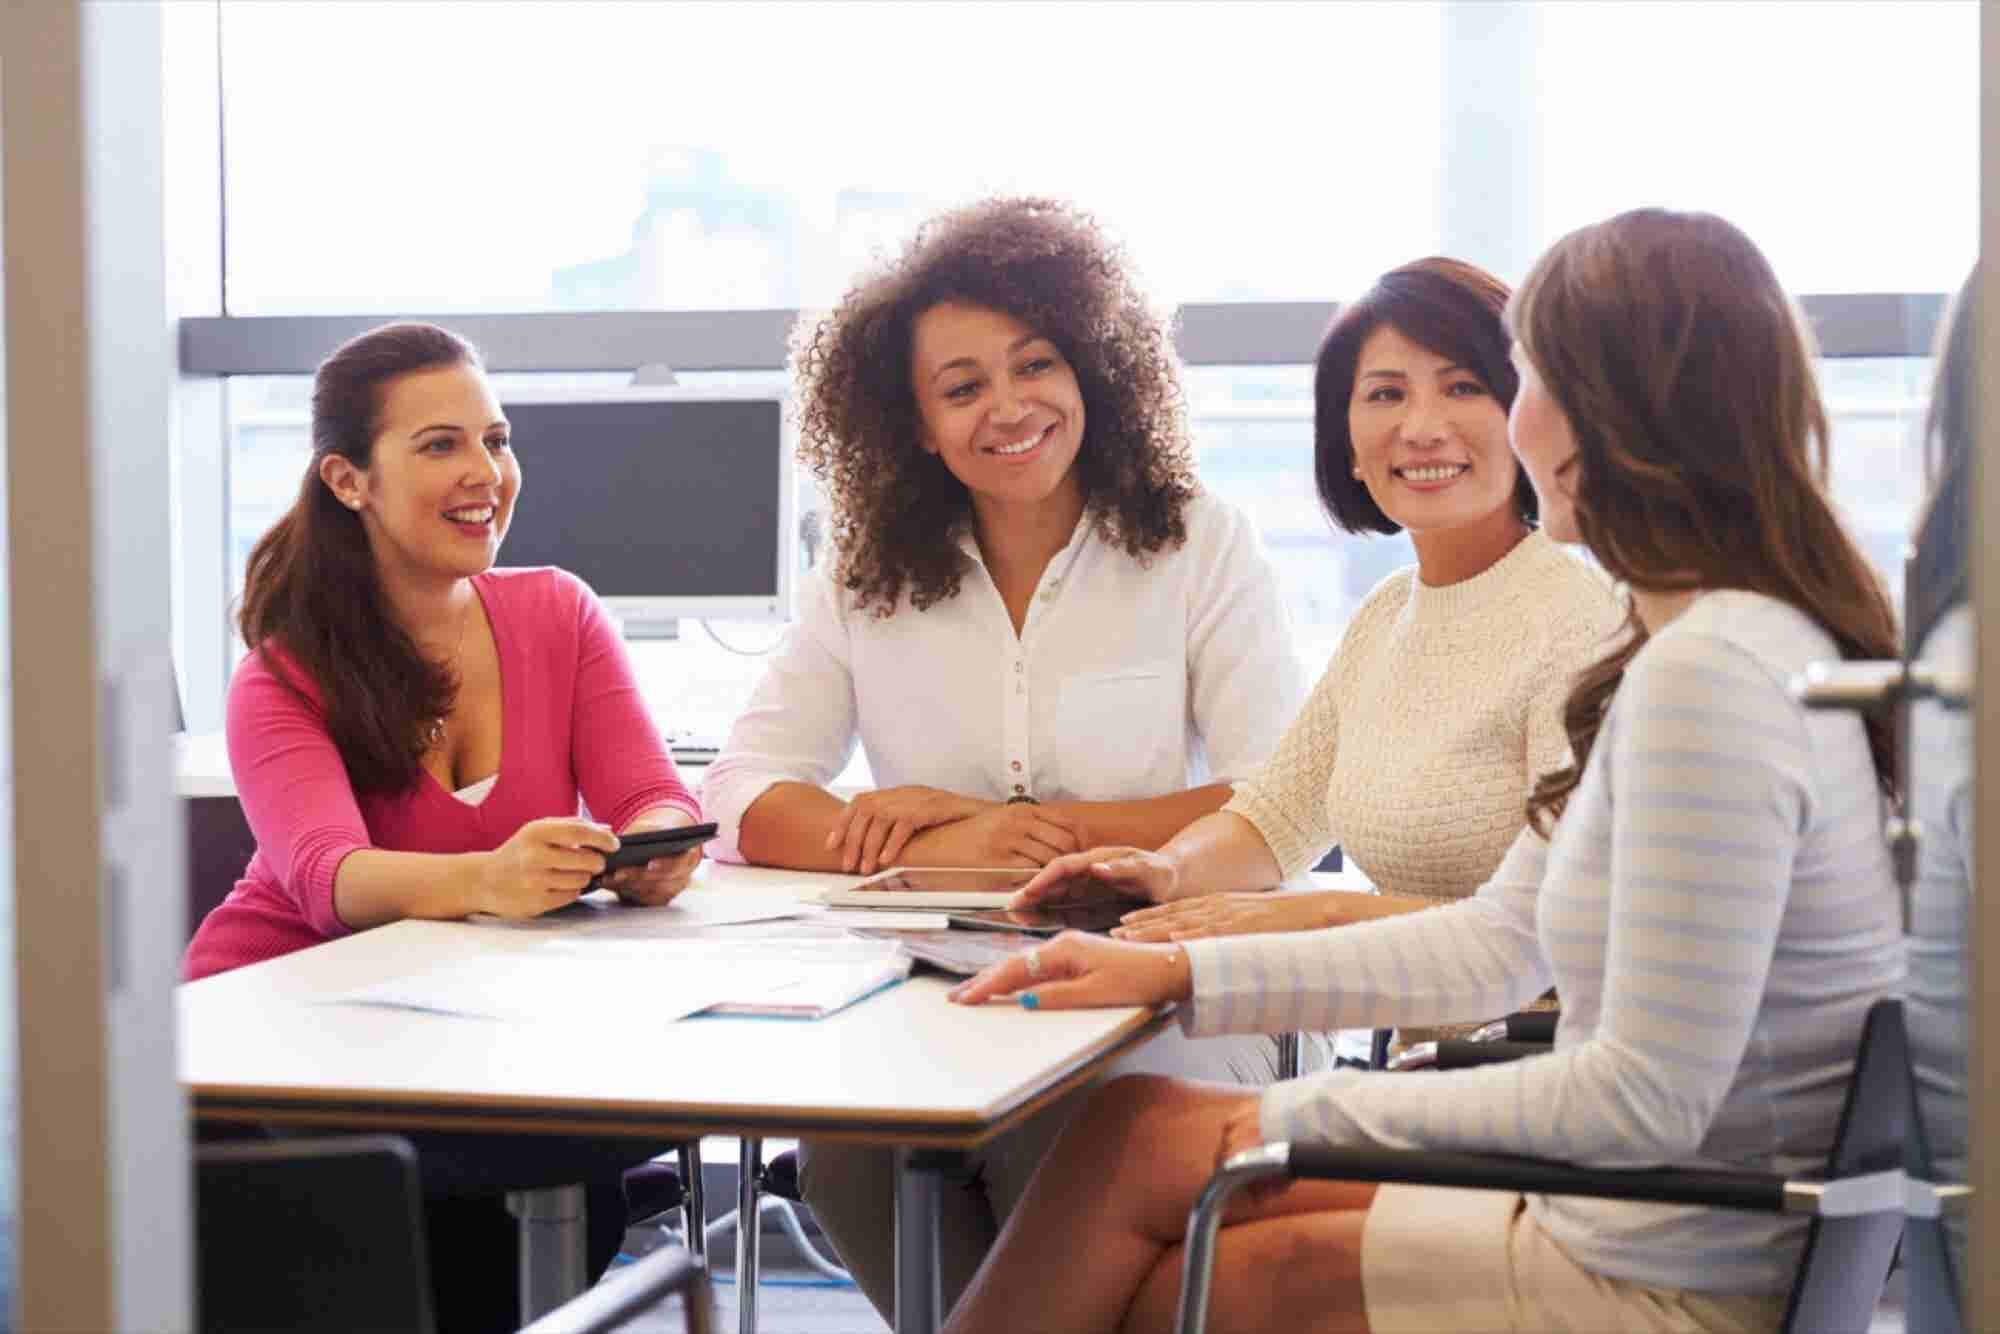 What is Lacking For Women Safety in Offices And How to Deal With It